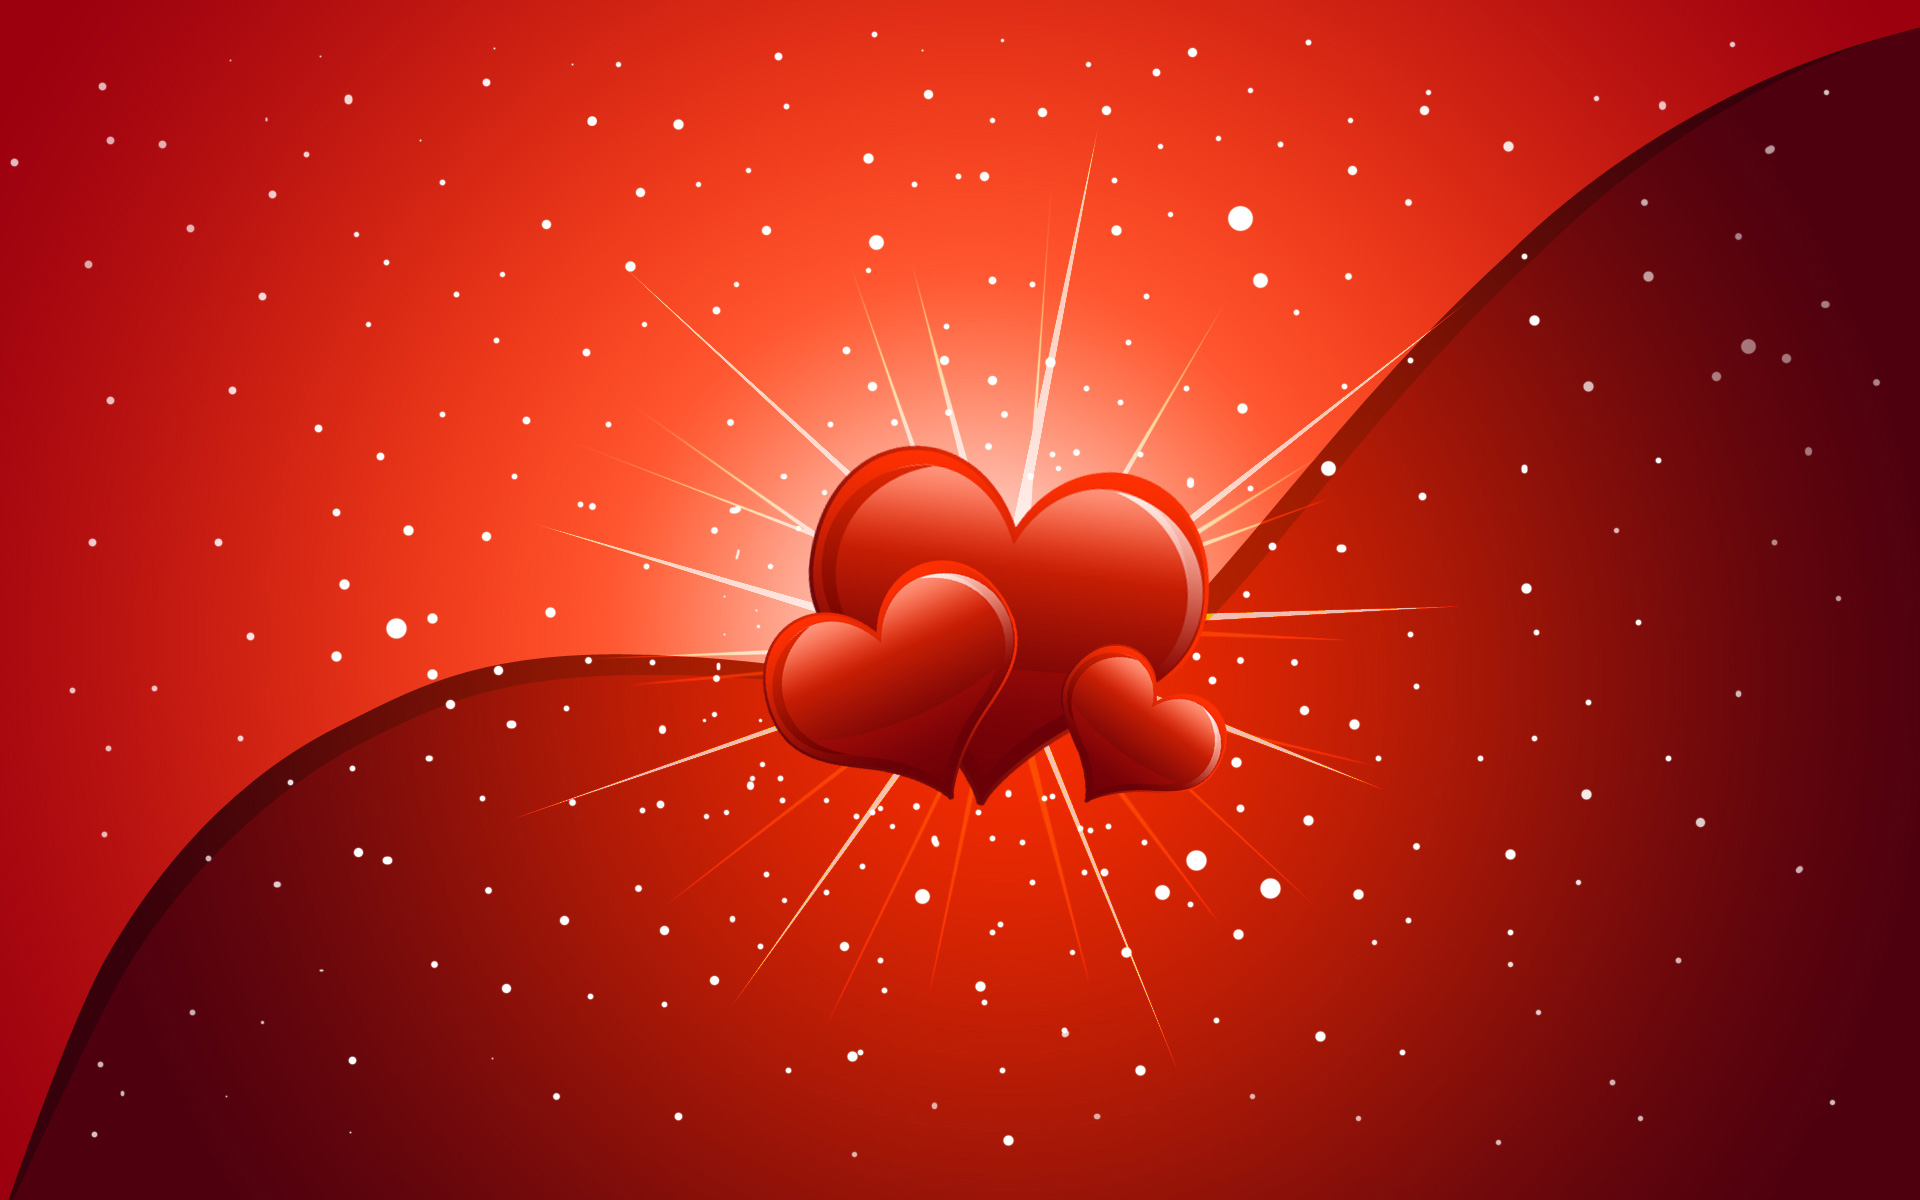 wallpaper romantic valentines day hd wallpapers romantic valentines 1920x1200